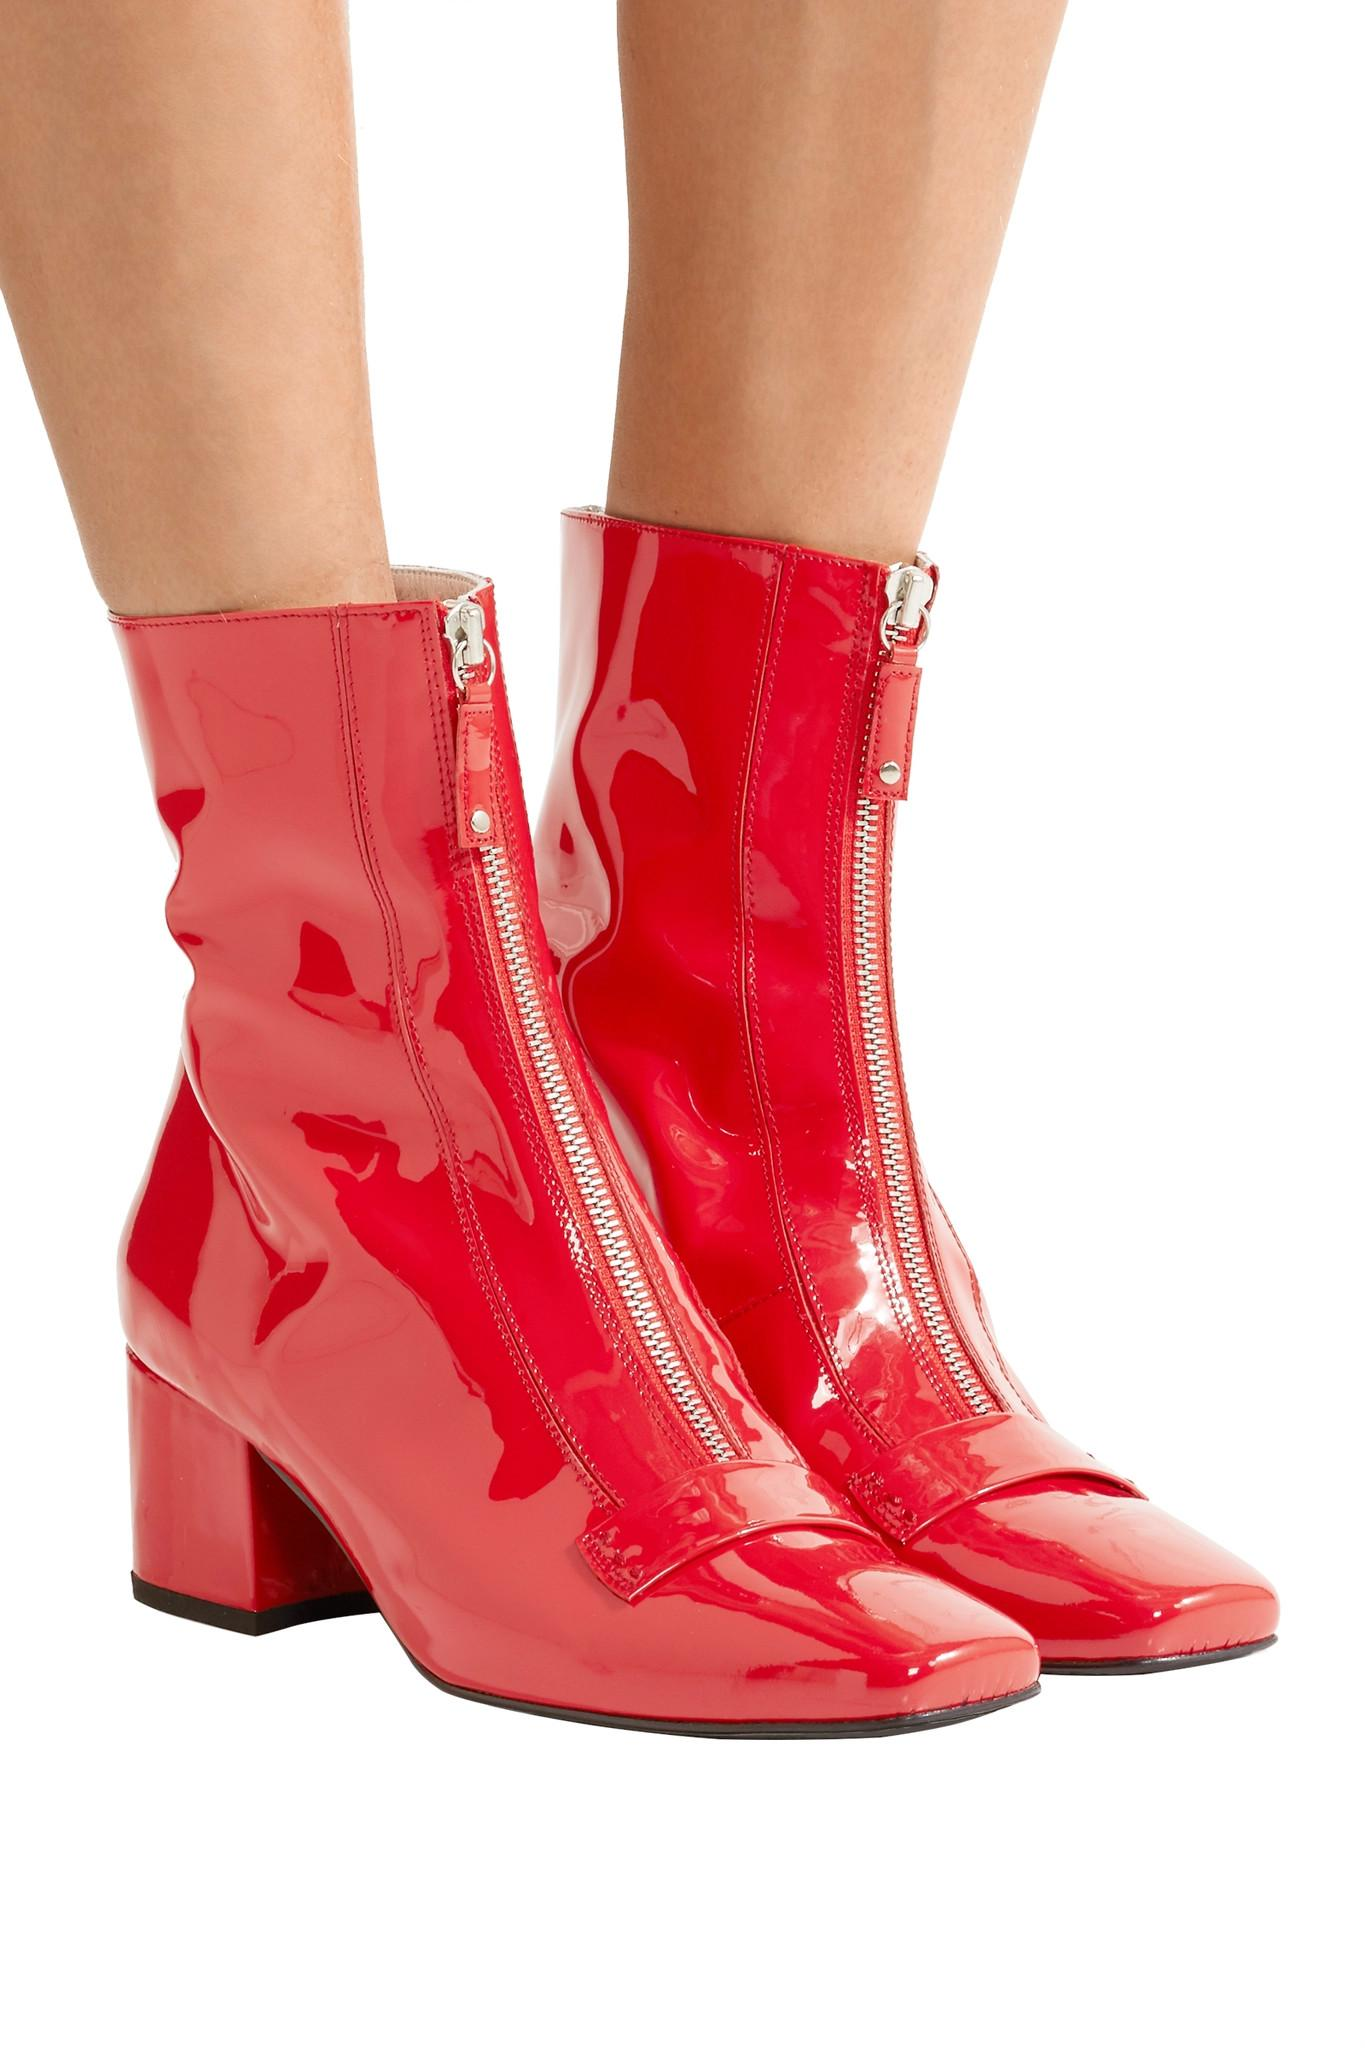 Dorateymur Double Delta Patent-leather Ankle Boots in Red